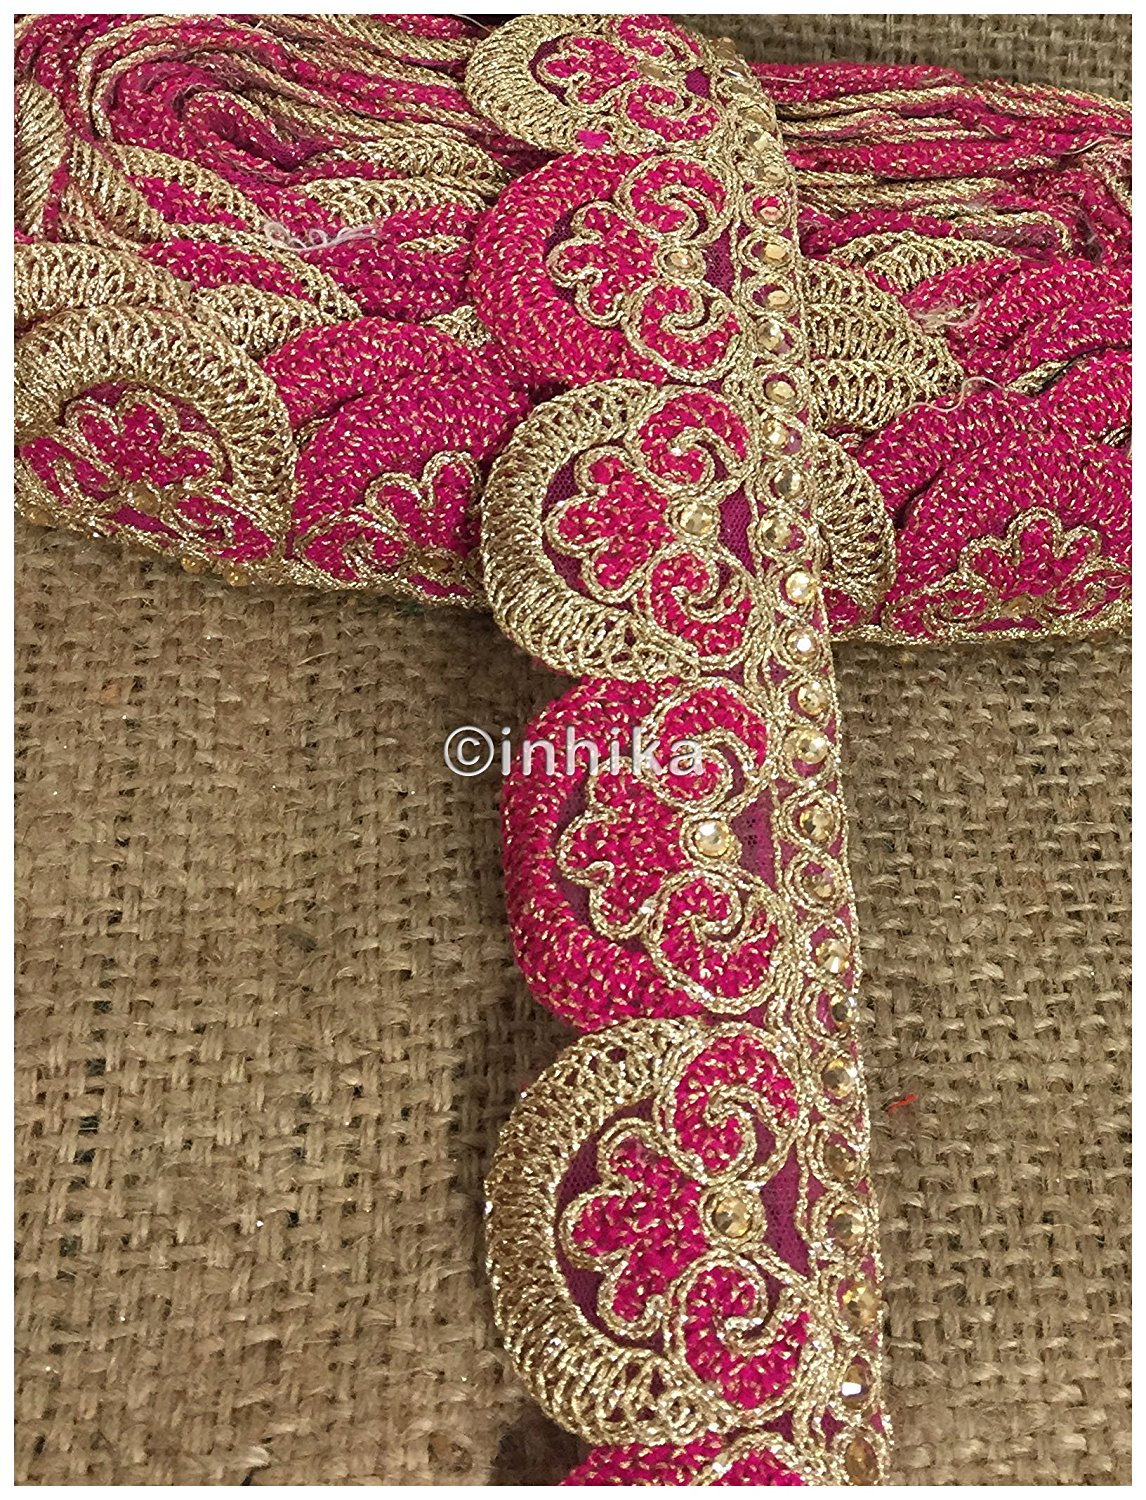 lace trim fabric bridal rhinestone lace appliques wholesale Rani-Pink-Embroidery-2-Inch-Wide-3255 Rani-Pink-Embroidery-2-Inch-Wide-3255